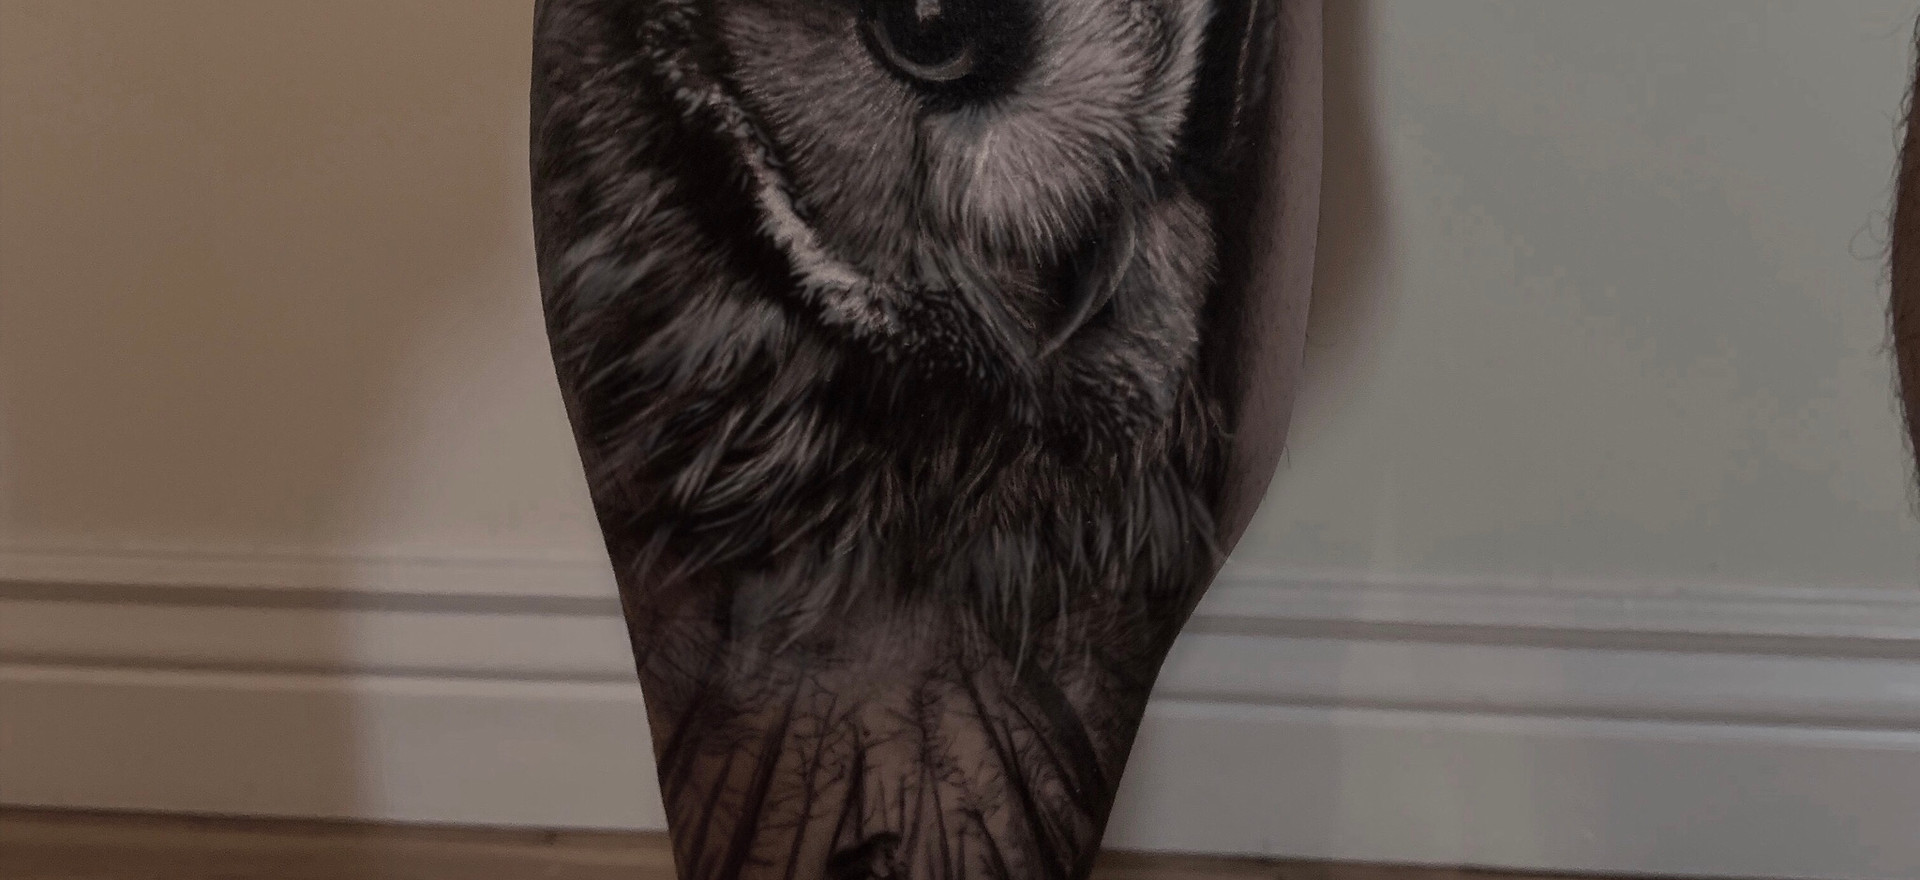 owl and running girl free session GIveaway winner tattoo